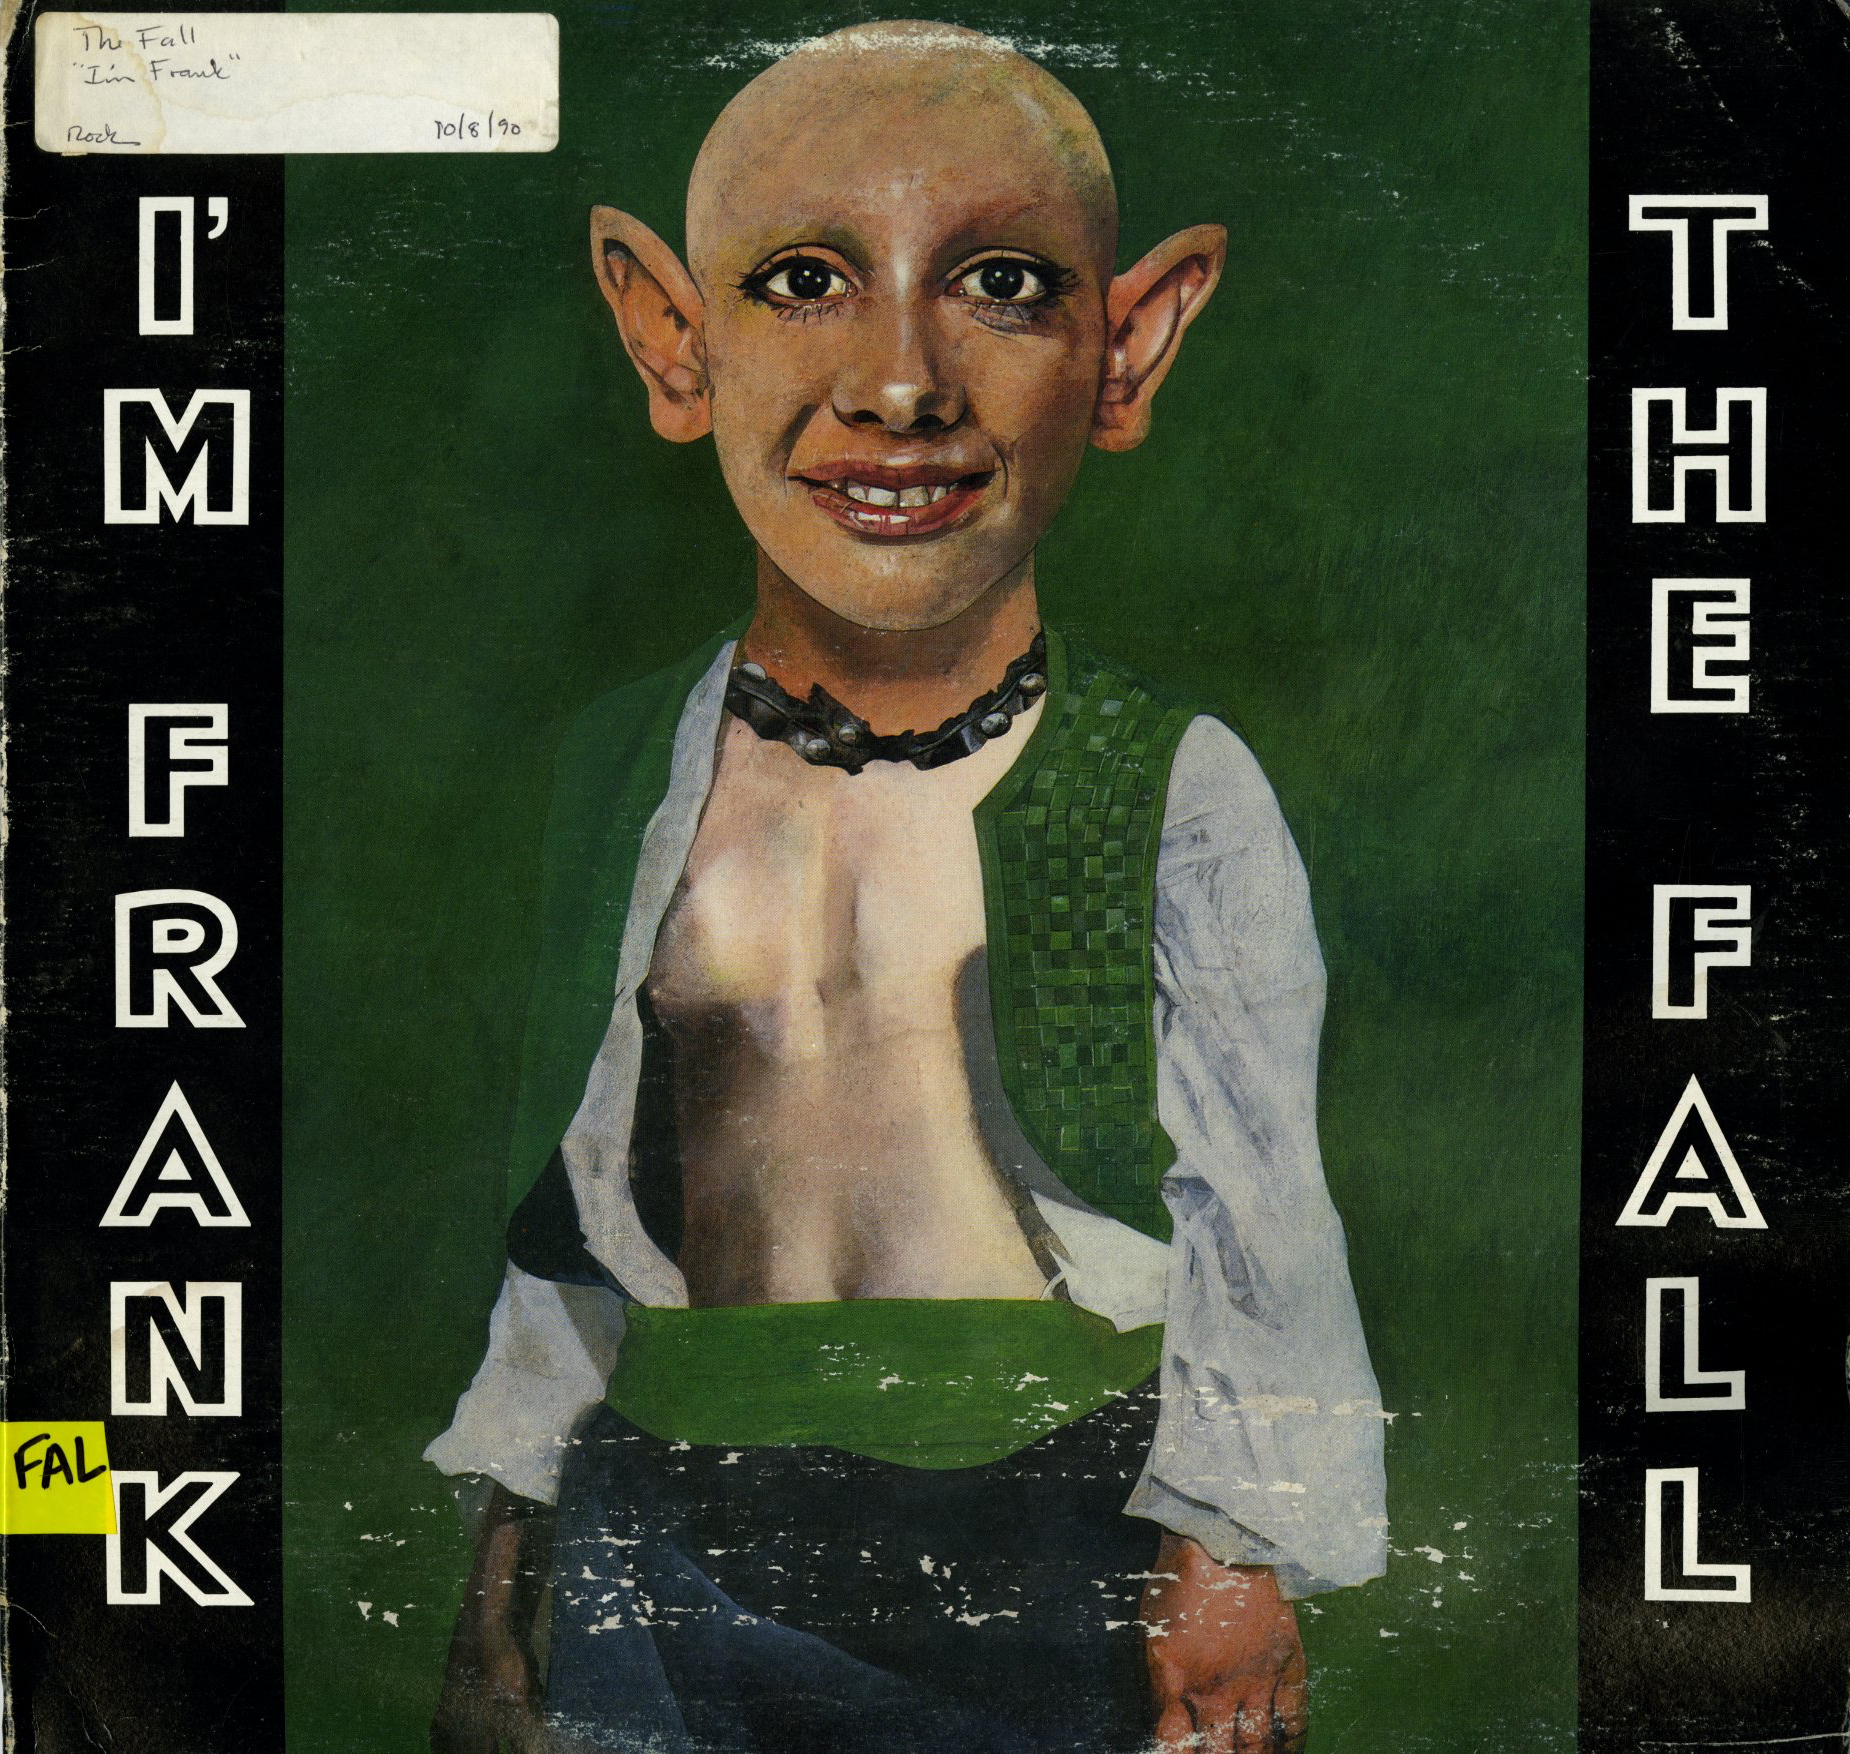 The_Fall_-_Im_Frank